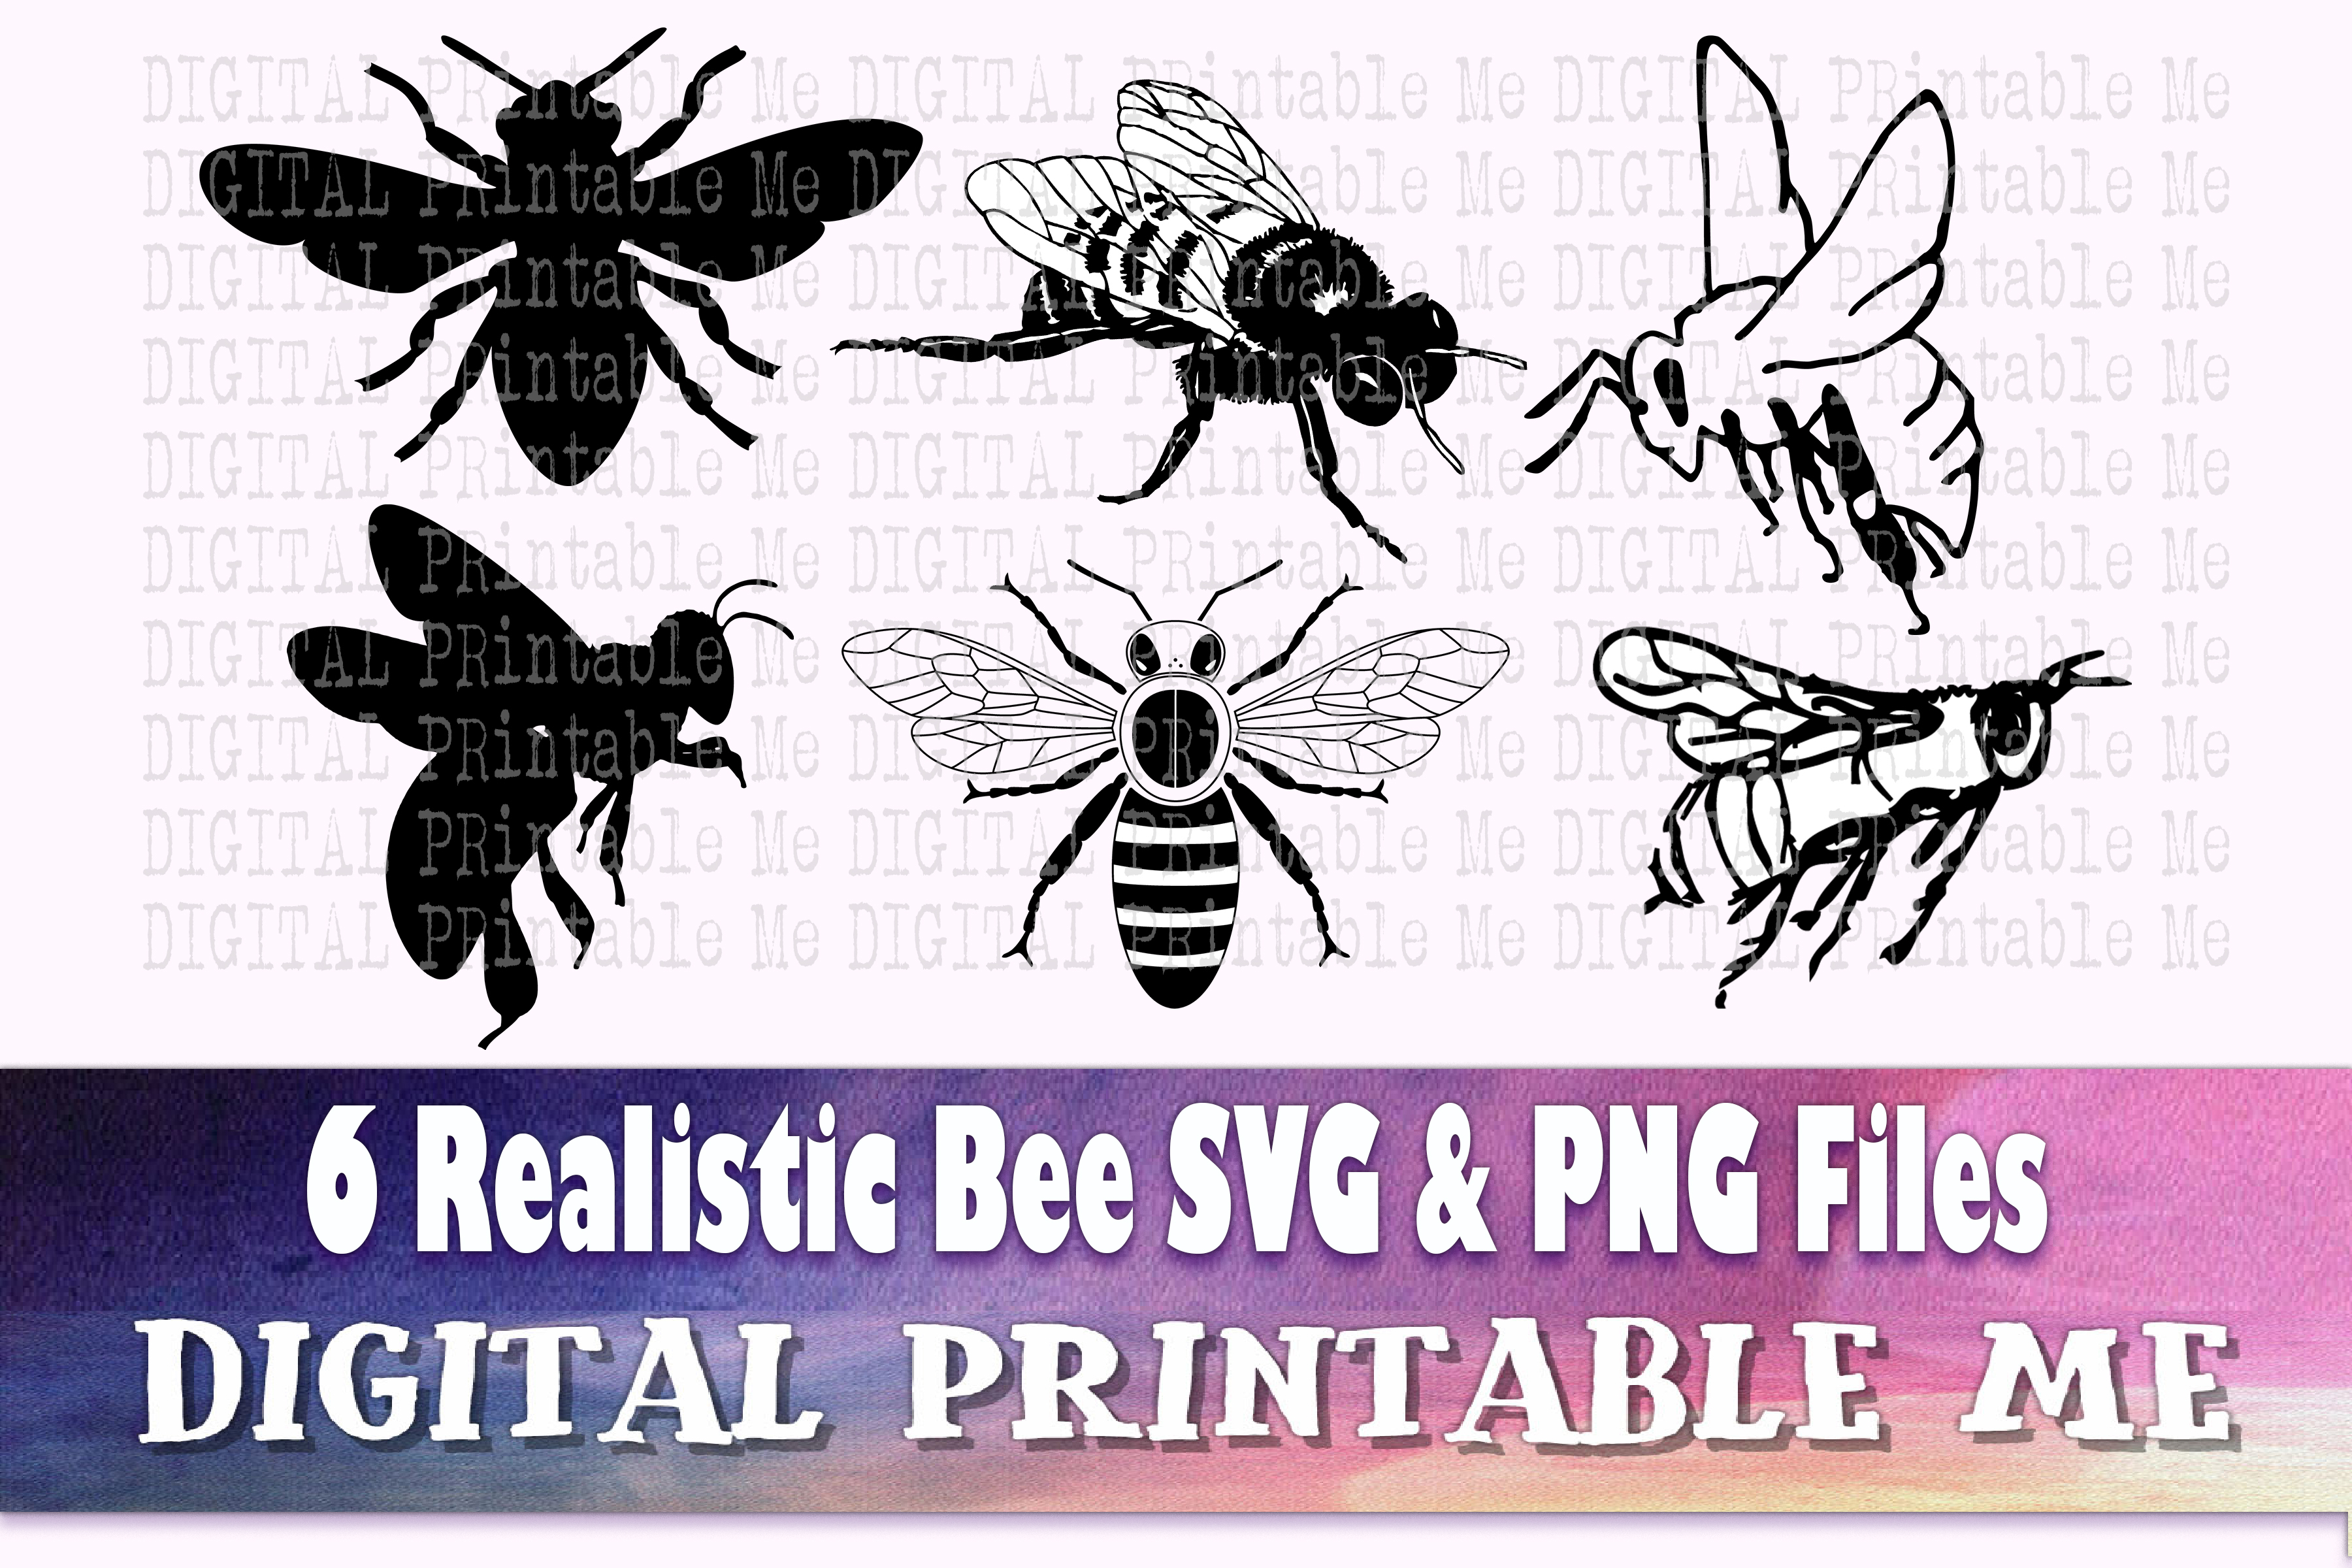 Bees Svg Bundle Realistic Bee Silhouette SVG File